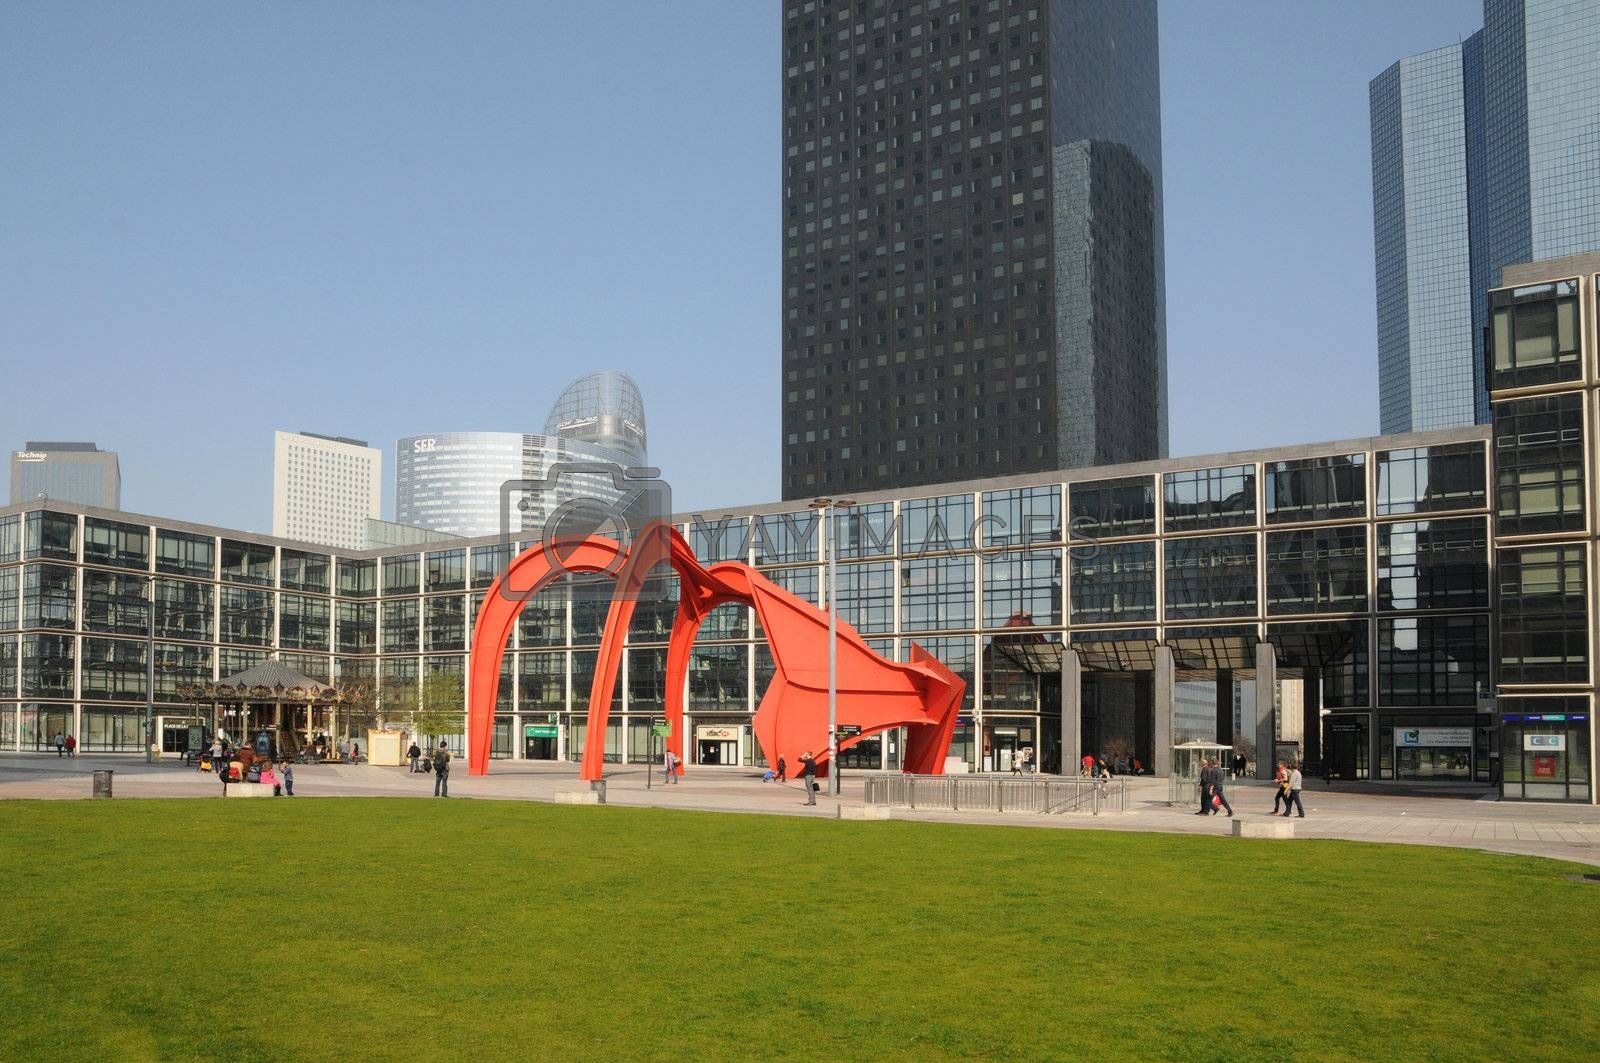 The Red Spider, a sculpture of Calder in La Defense